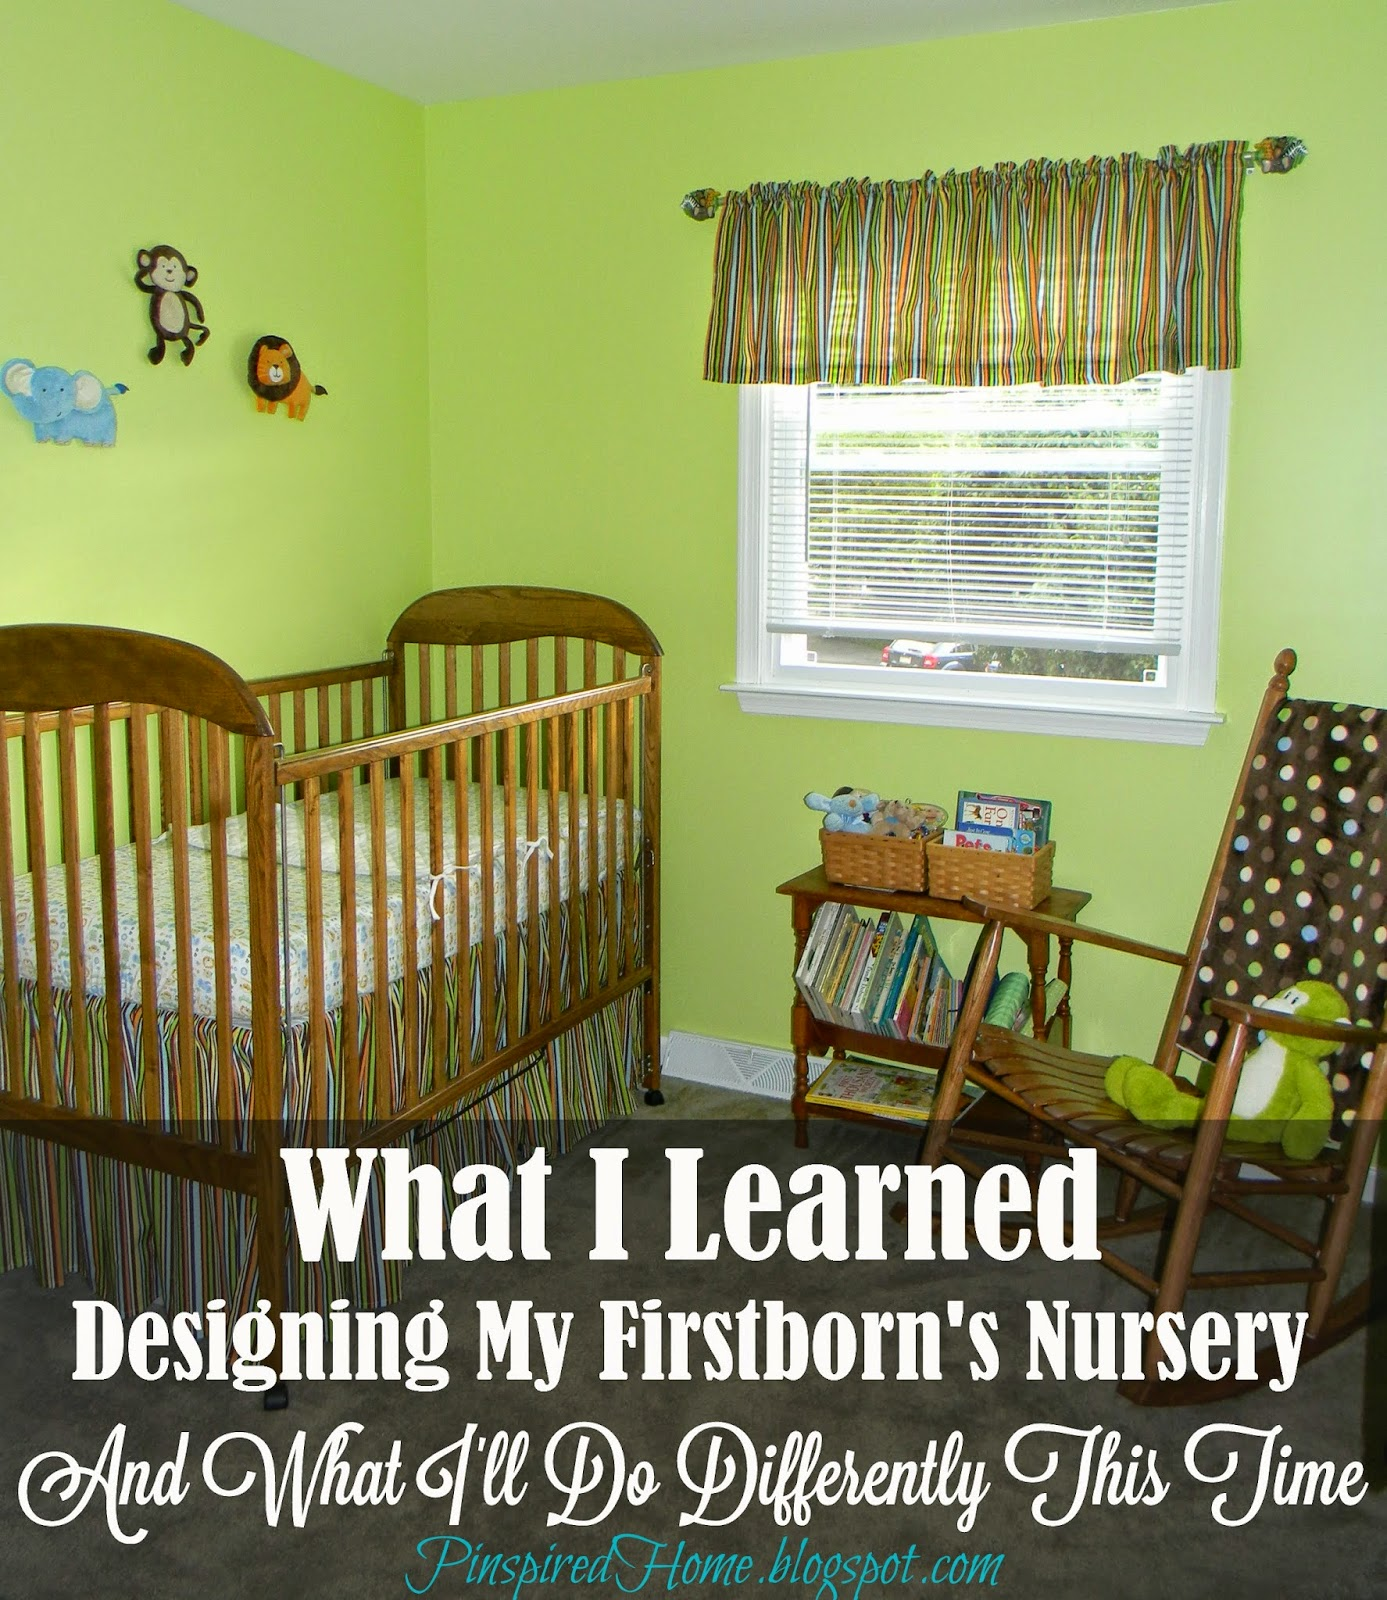 http://pinspiredhome.blogspot.com/2015/02/what-i-learned-designing-my-firstborns.html